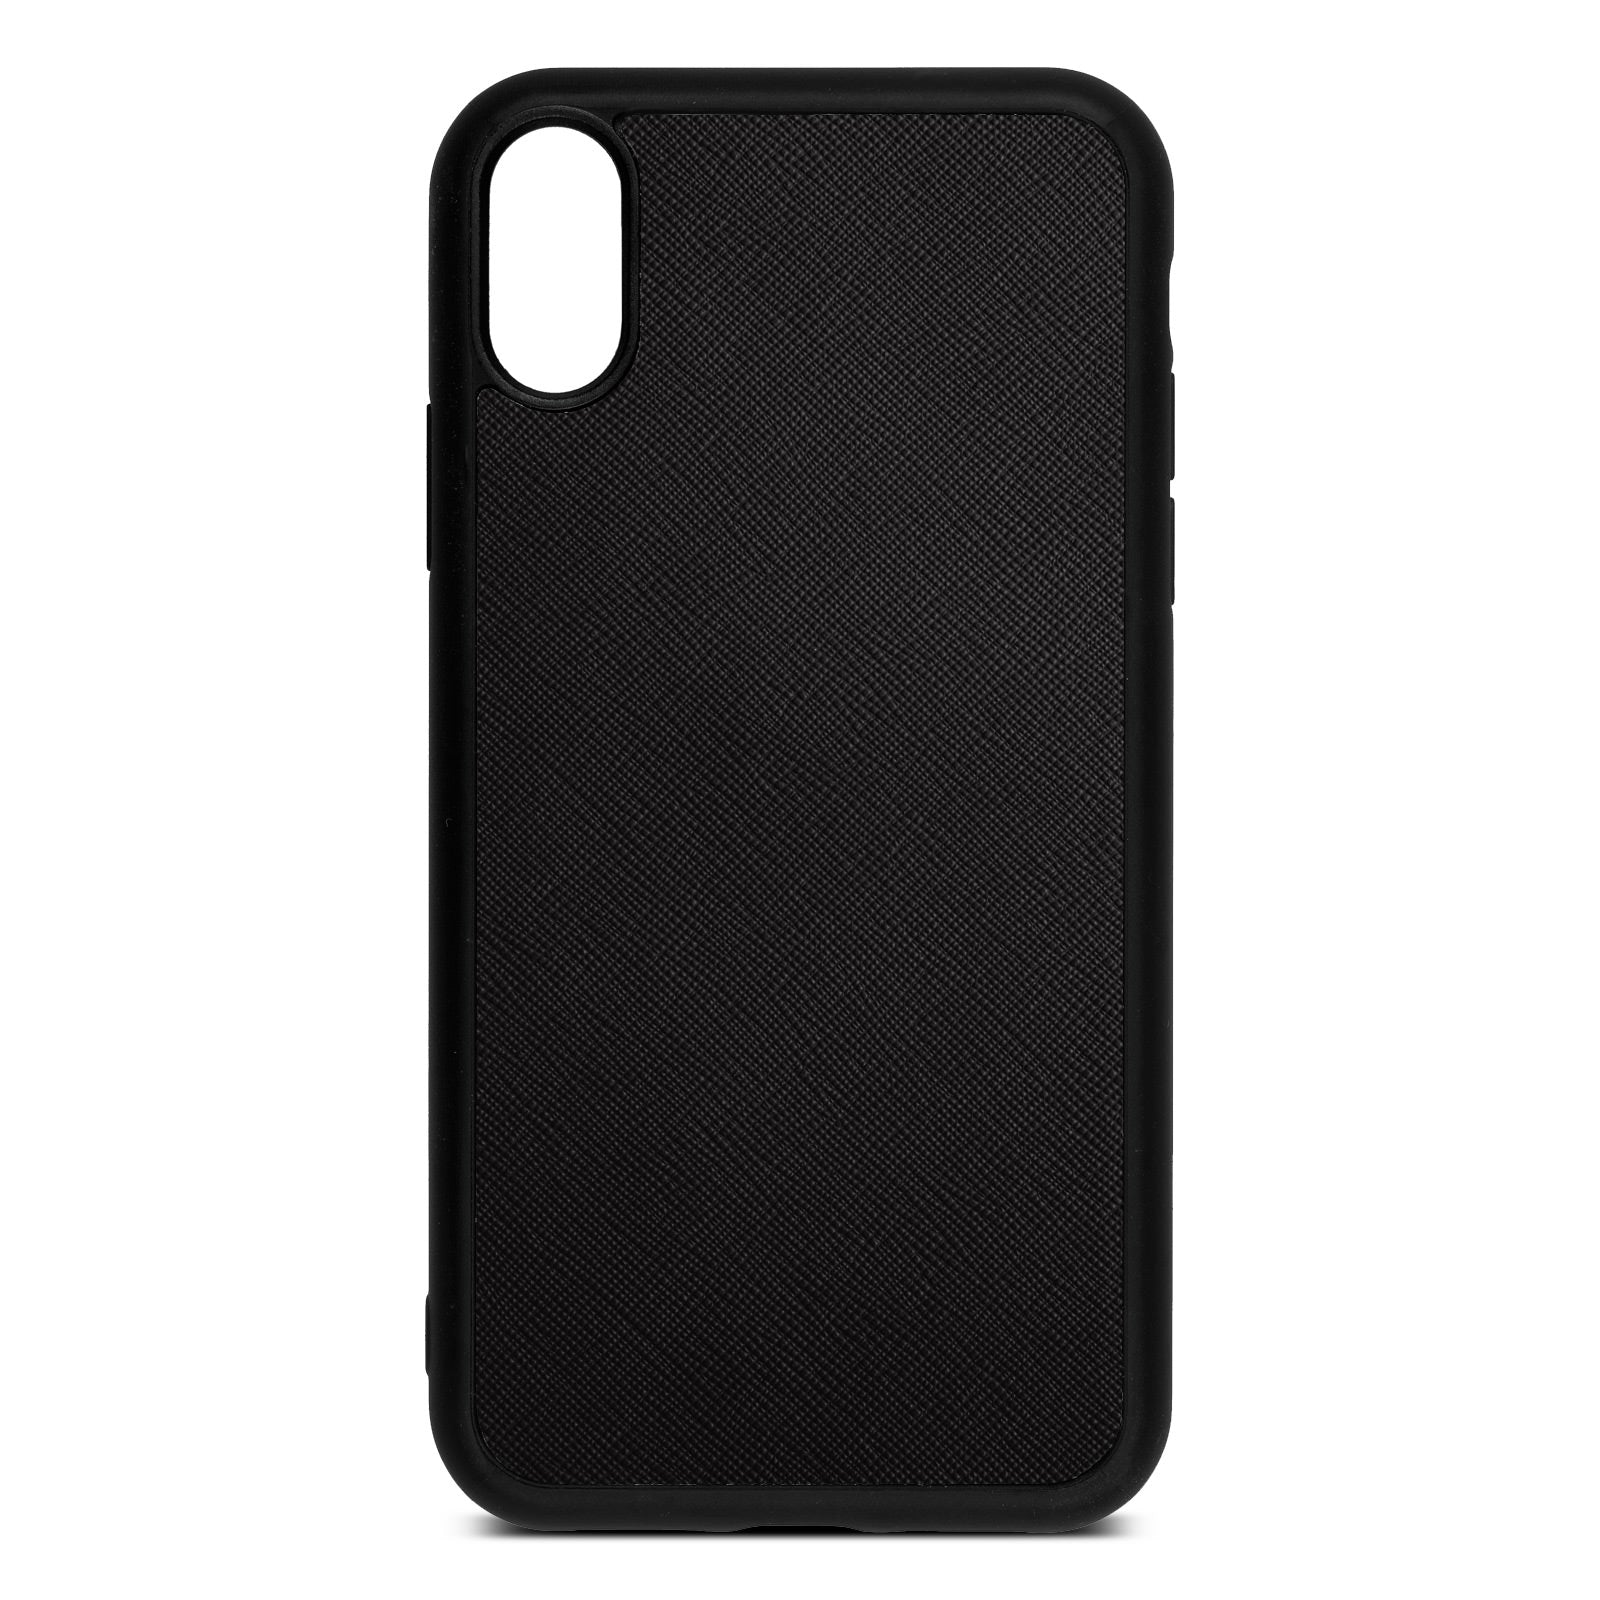 Blank iPhone XR Drop Shadow Black Leather Case